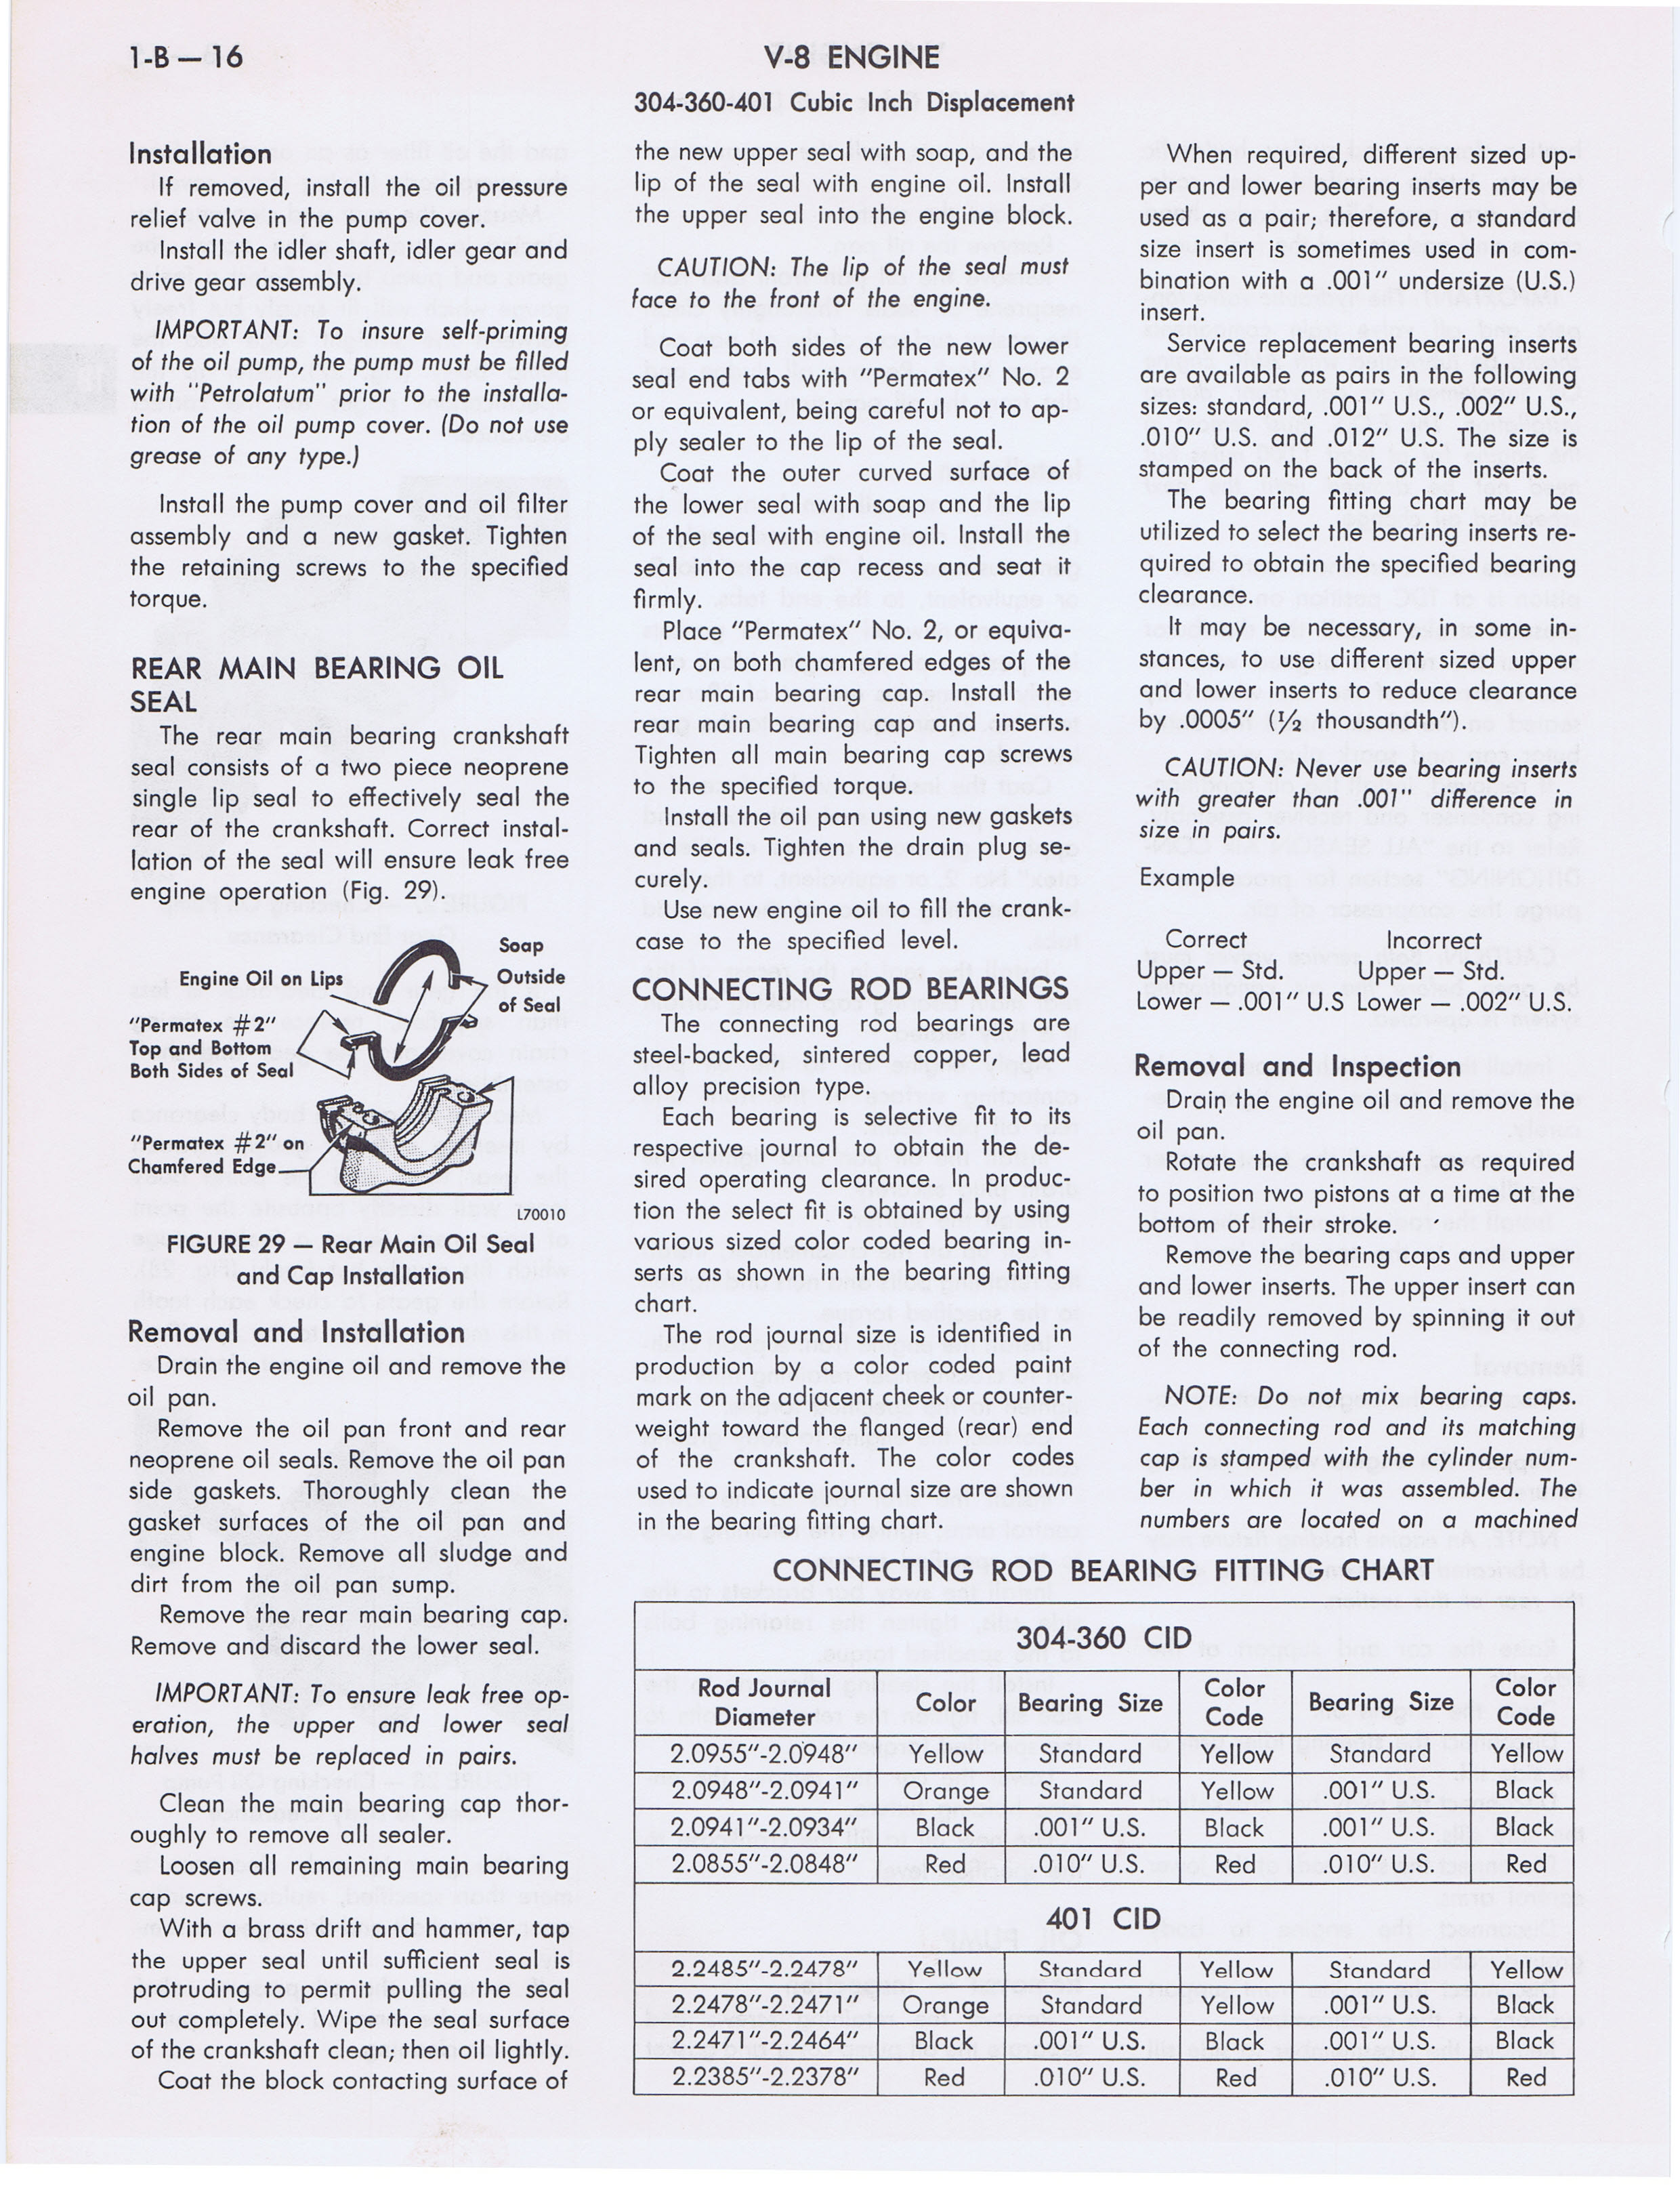 1973 AMC Technical Service Manual page 62 of 487